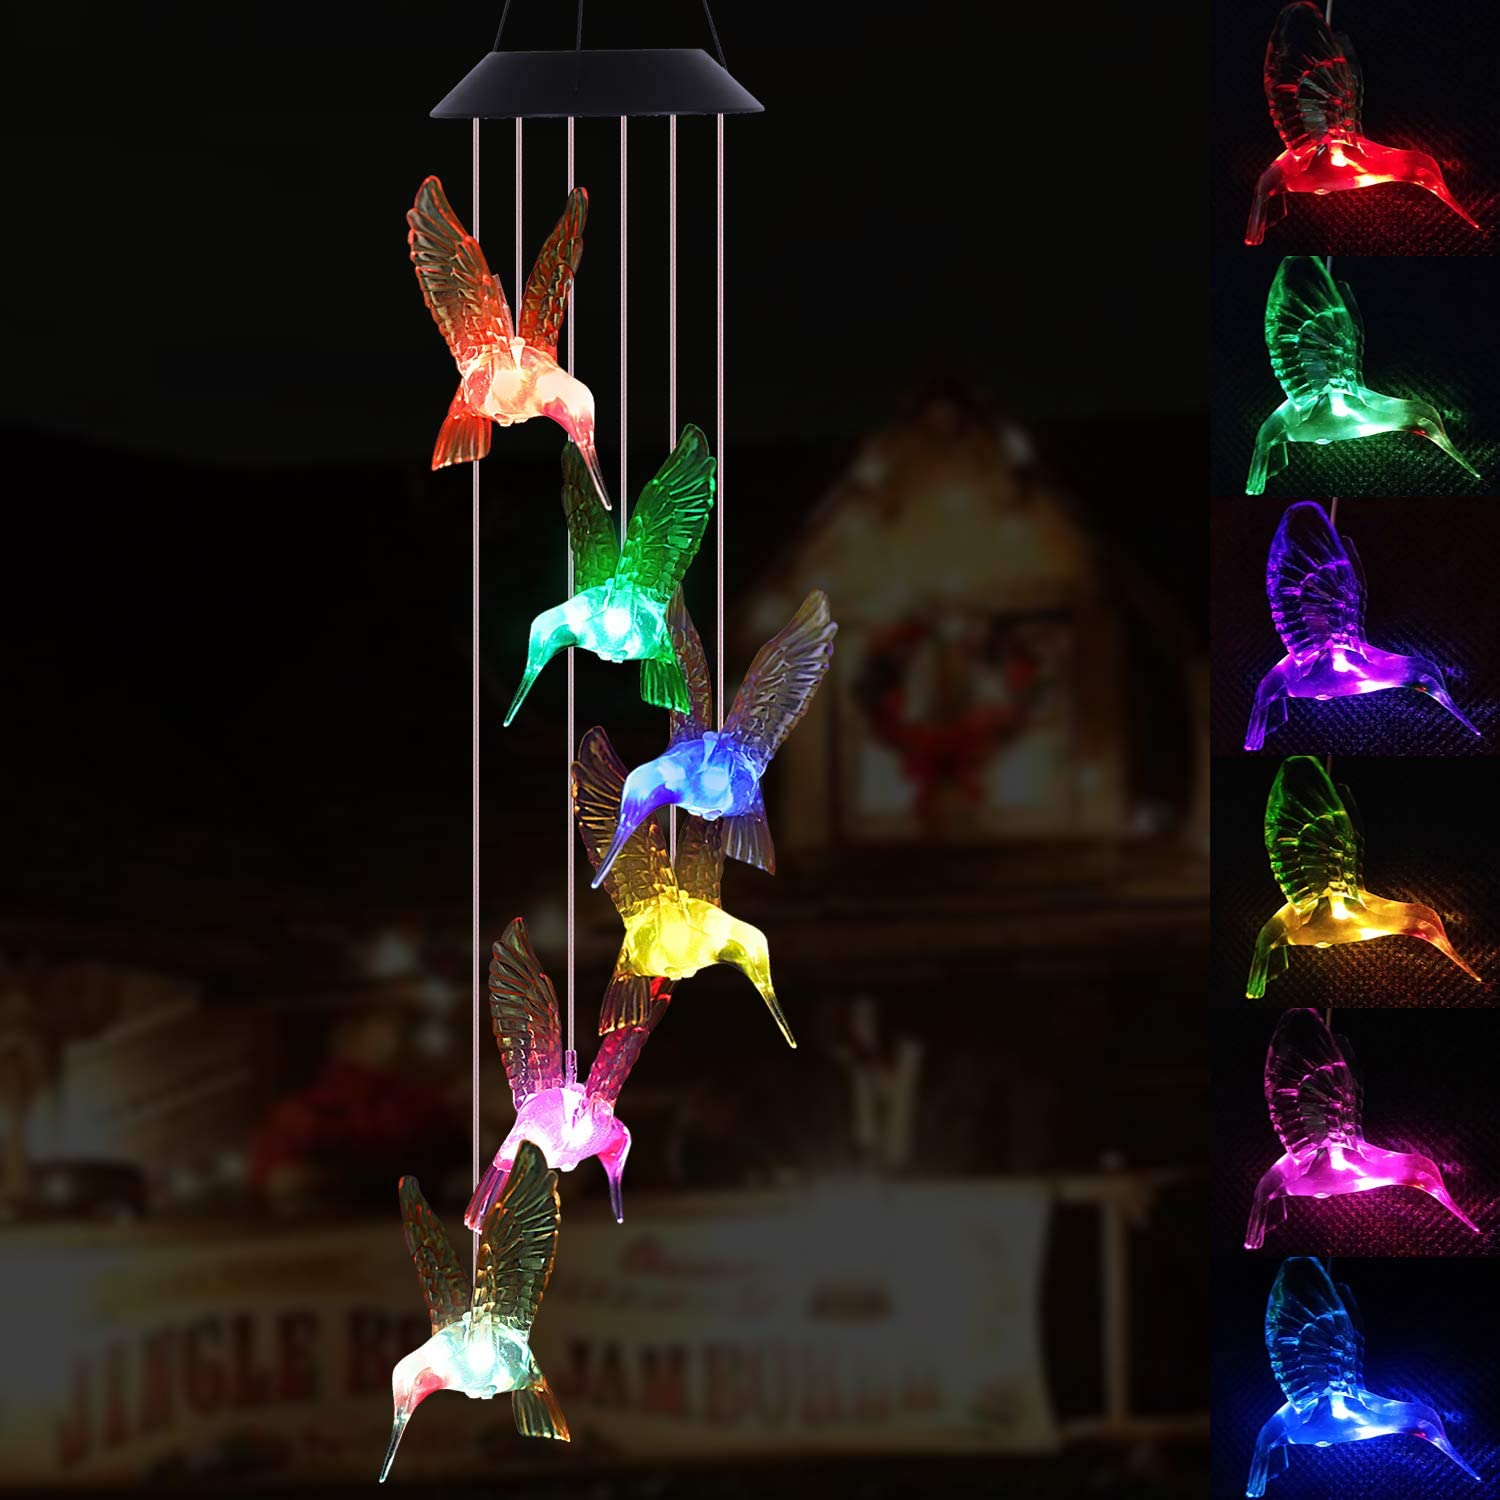 LED Hummingbird Solar Wind Chimes Light Outdoor Hanging - Waterproof Mobile Romantic Solar Powered Changing Color Xmas Gifts Wind Chimes for Home, Party, Festival, Night Garden Decoration(Blackboard) : Garden & Outdoor